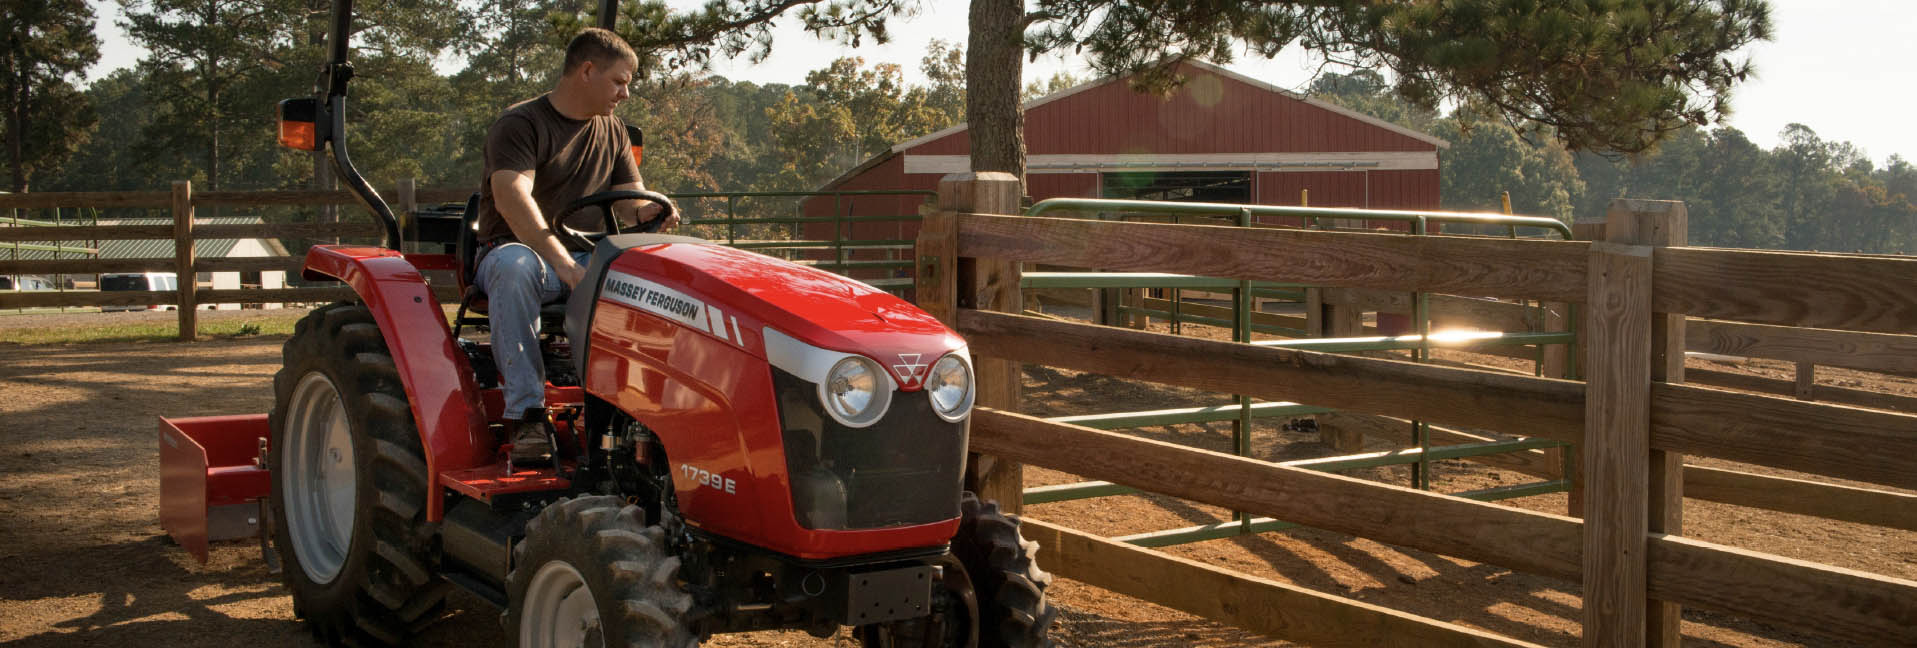 Compact Tractor 001